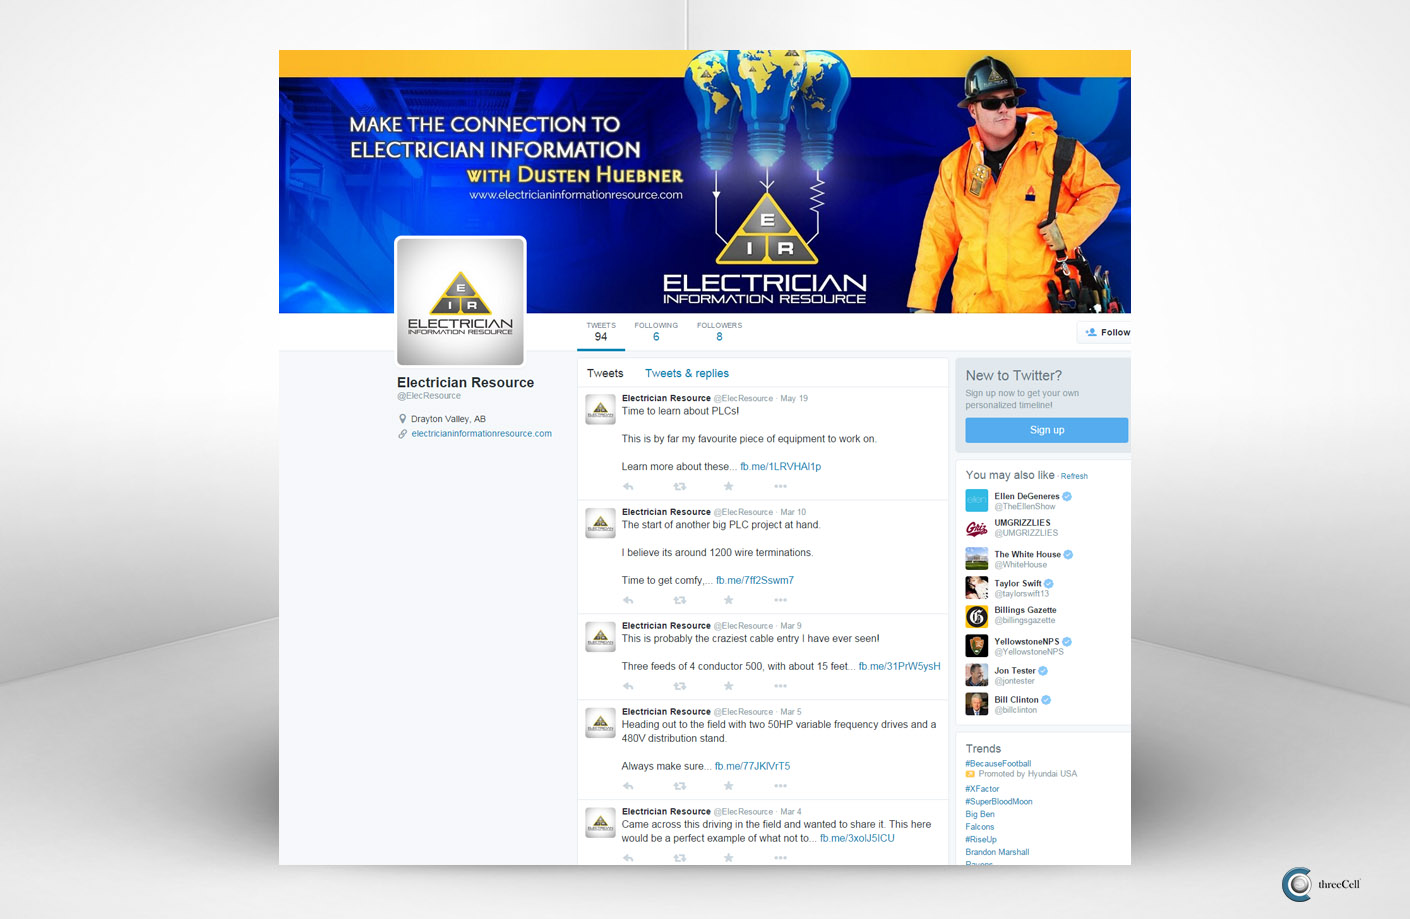 Electrician Information Resource - Twitter Social Media Design